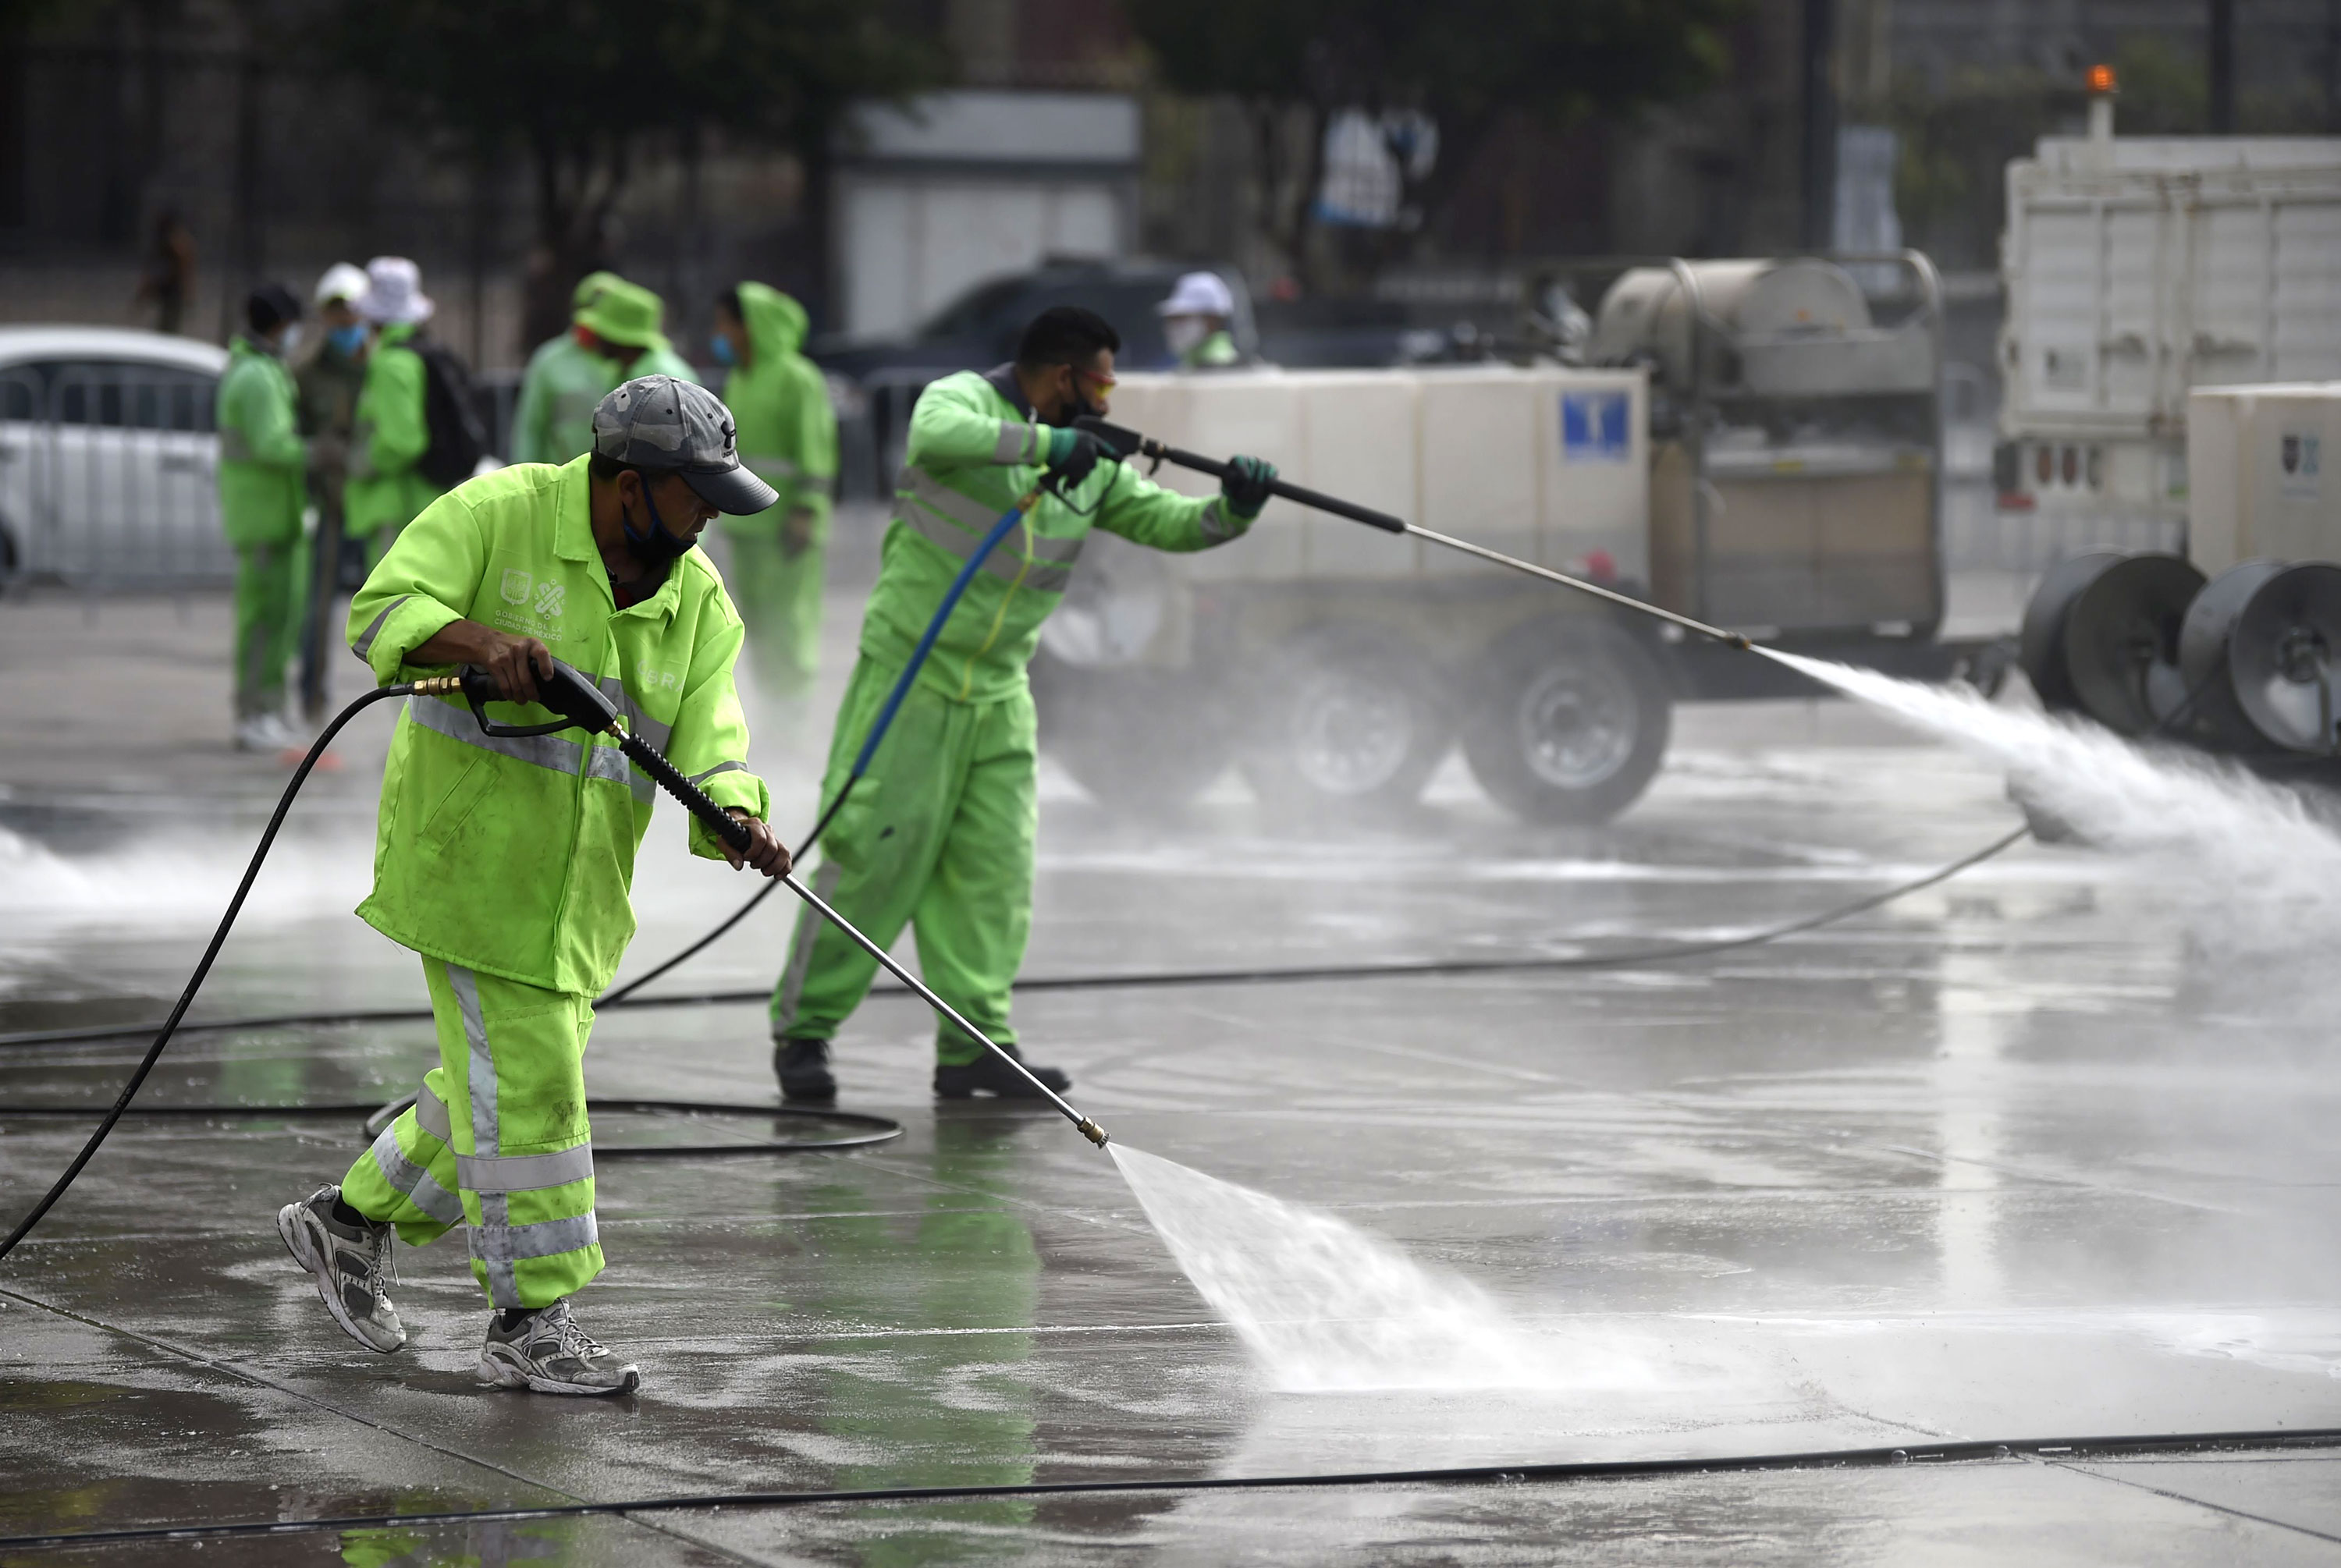 Workers disinfect and clean the Zocalo square in Mexico City on June 29.